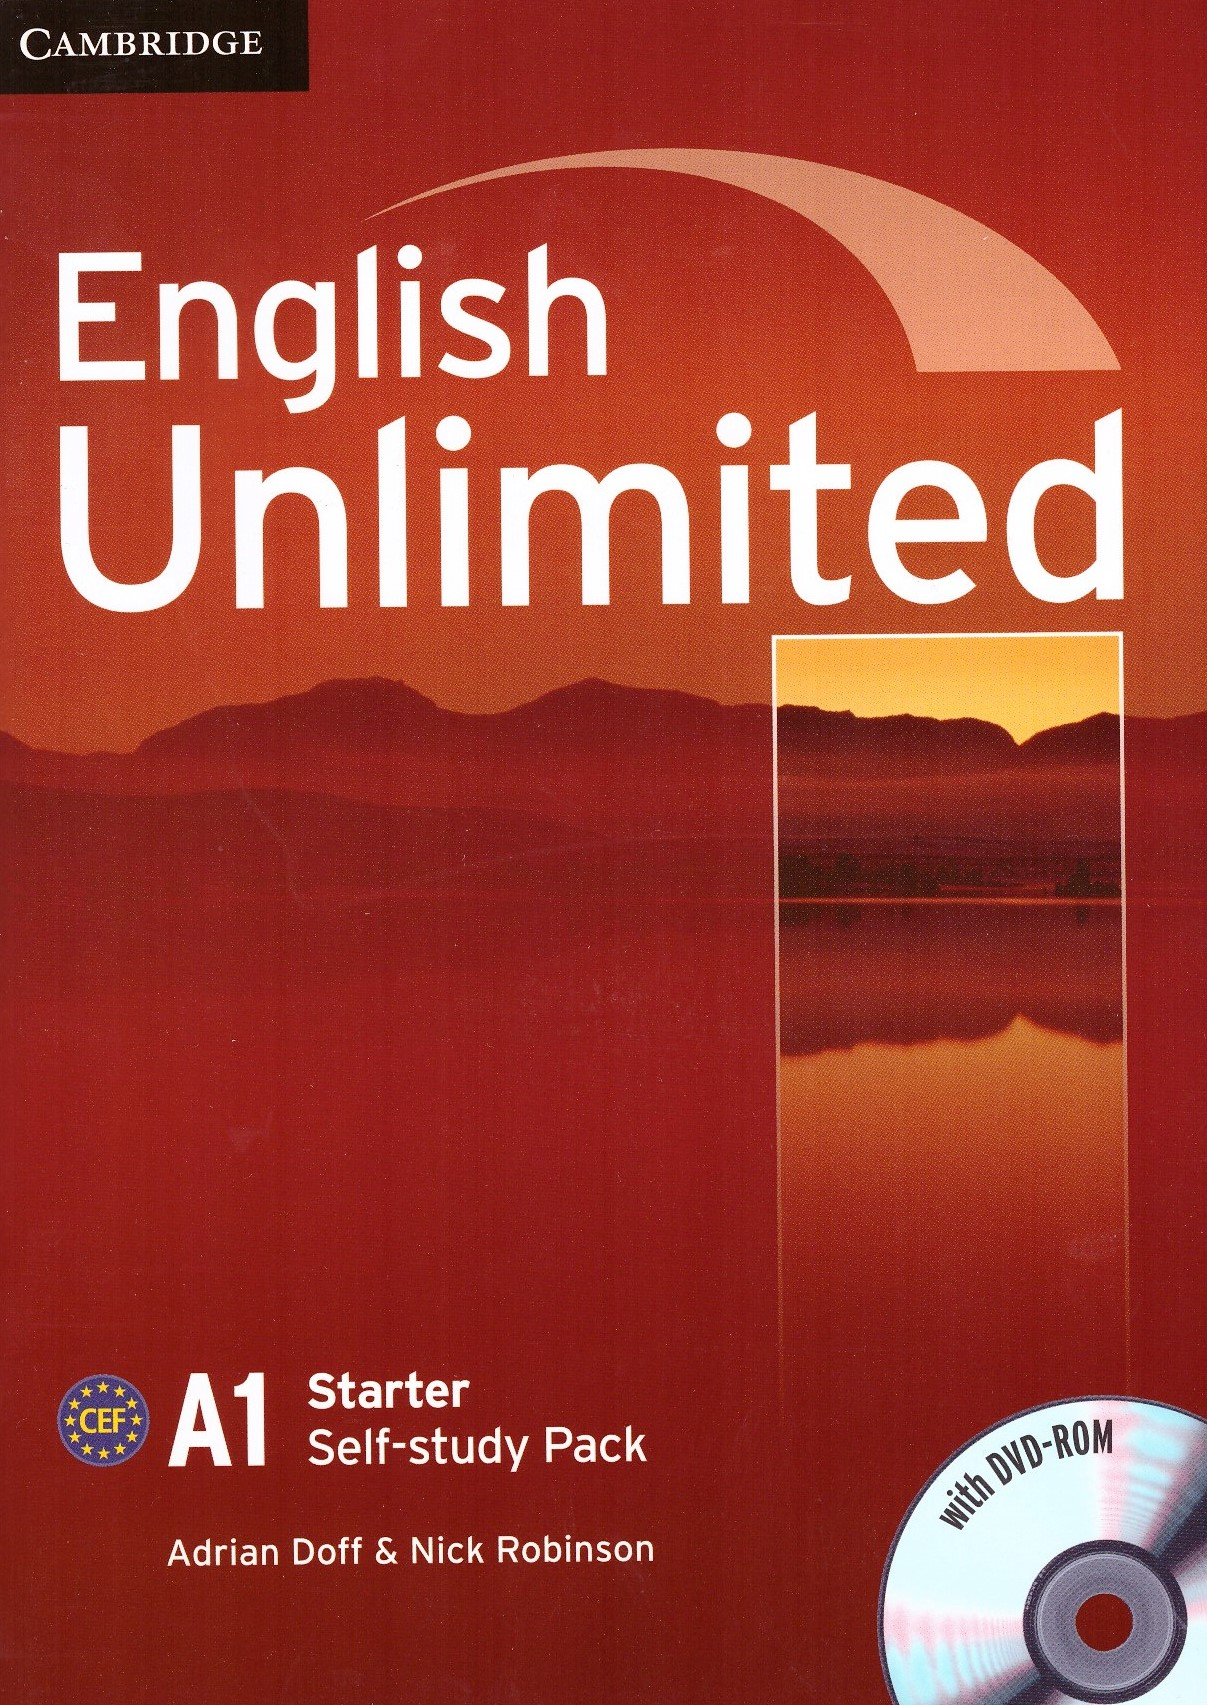 a1 study pack English unlimited all productspdf - download as pdf file english unlimited advanced self-study pack english unlimited a1 starter.